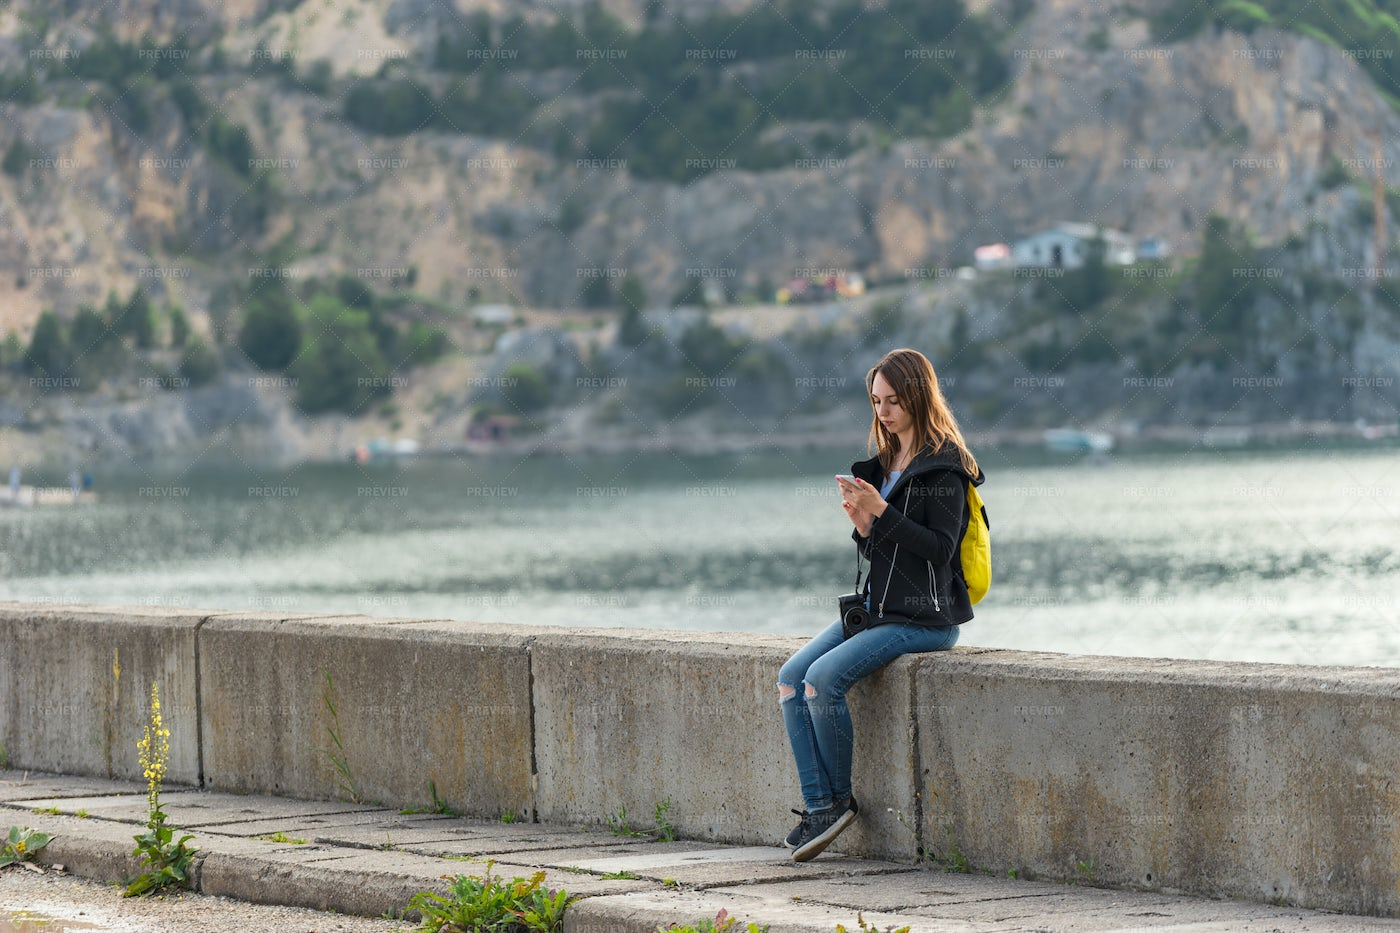 Looking A Smartphone Outdoors: Stock Photos